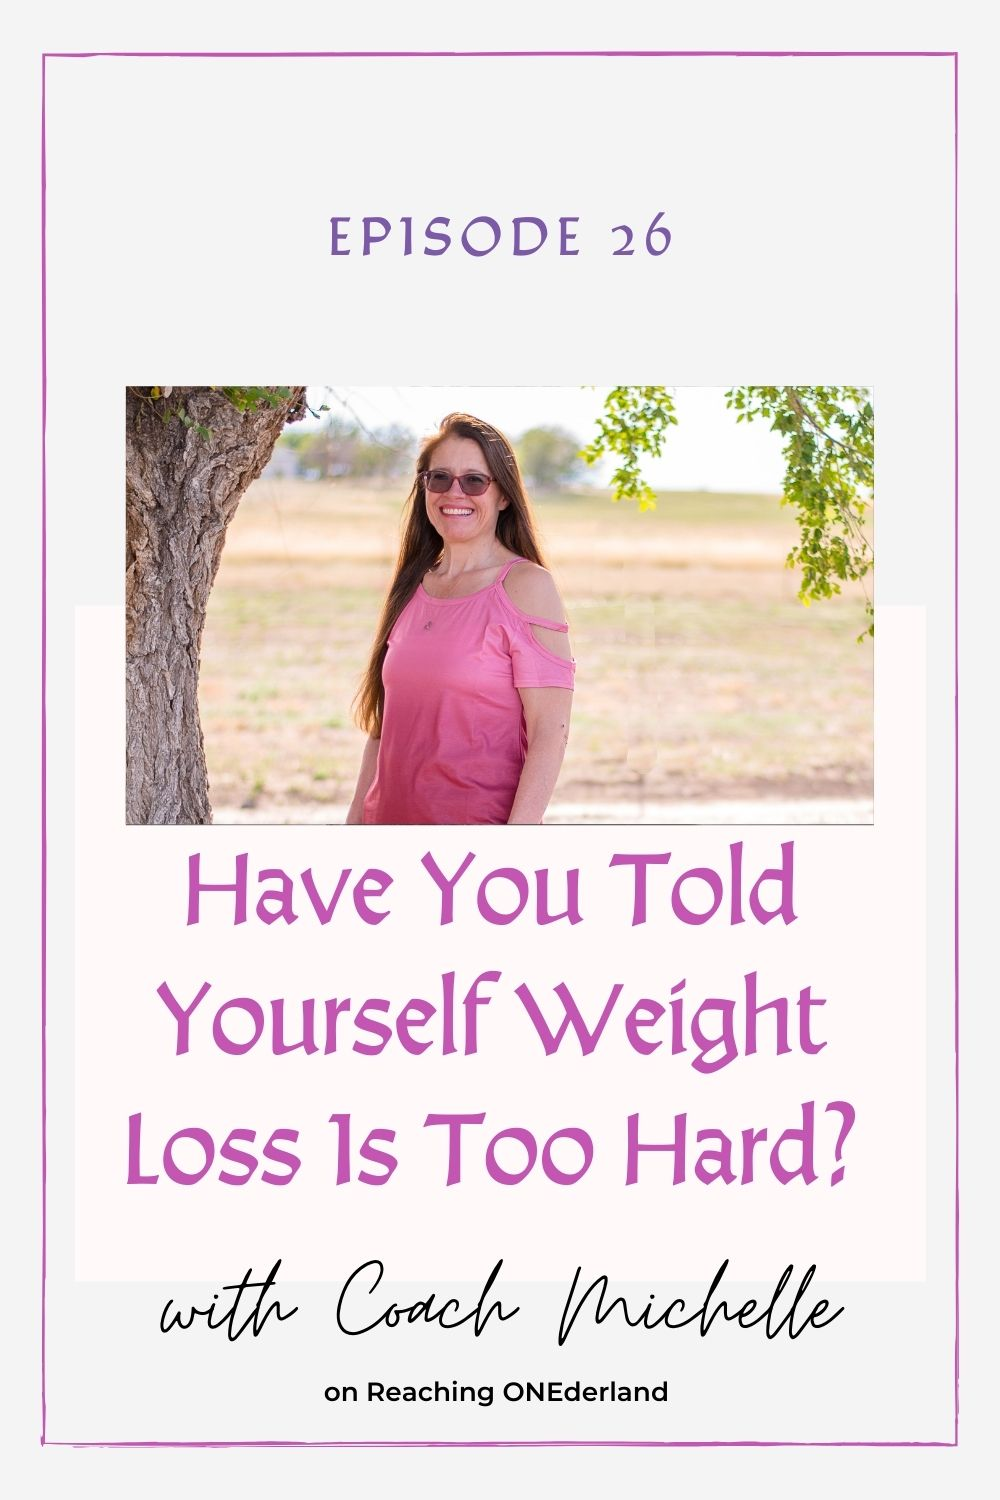 Have You Told Yourself Weight Loss Is Too Hard?